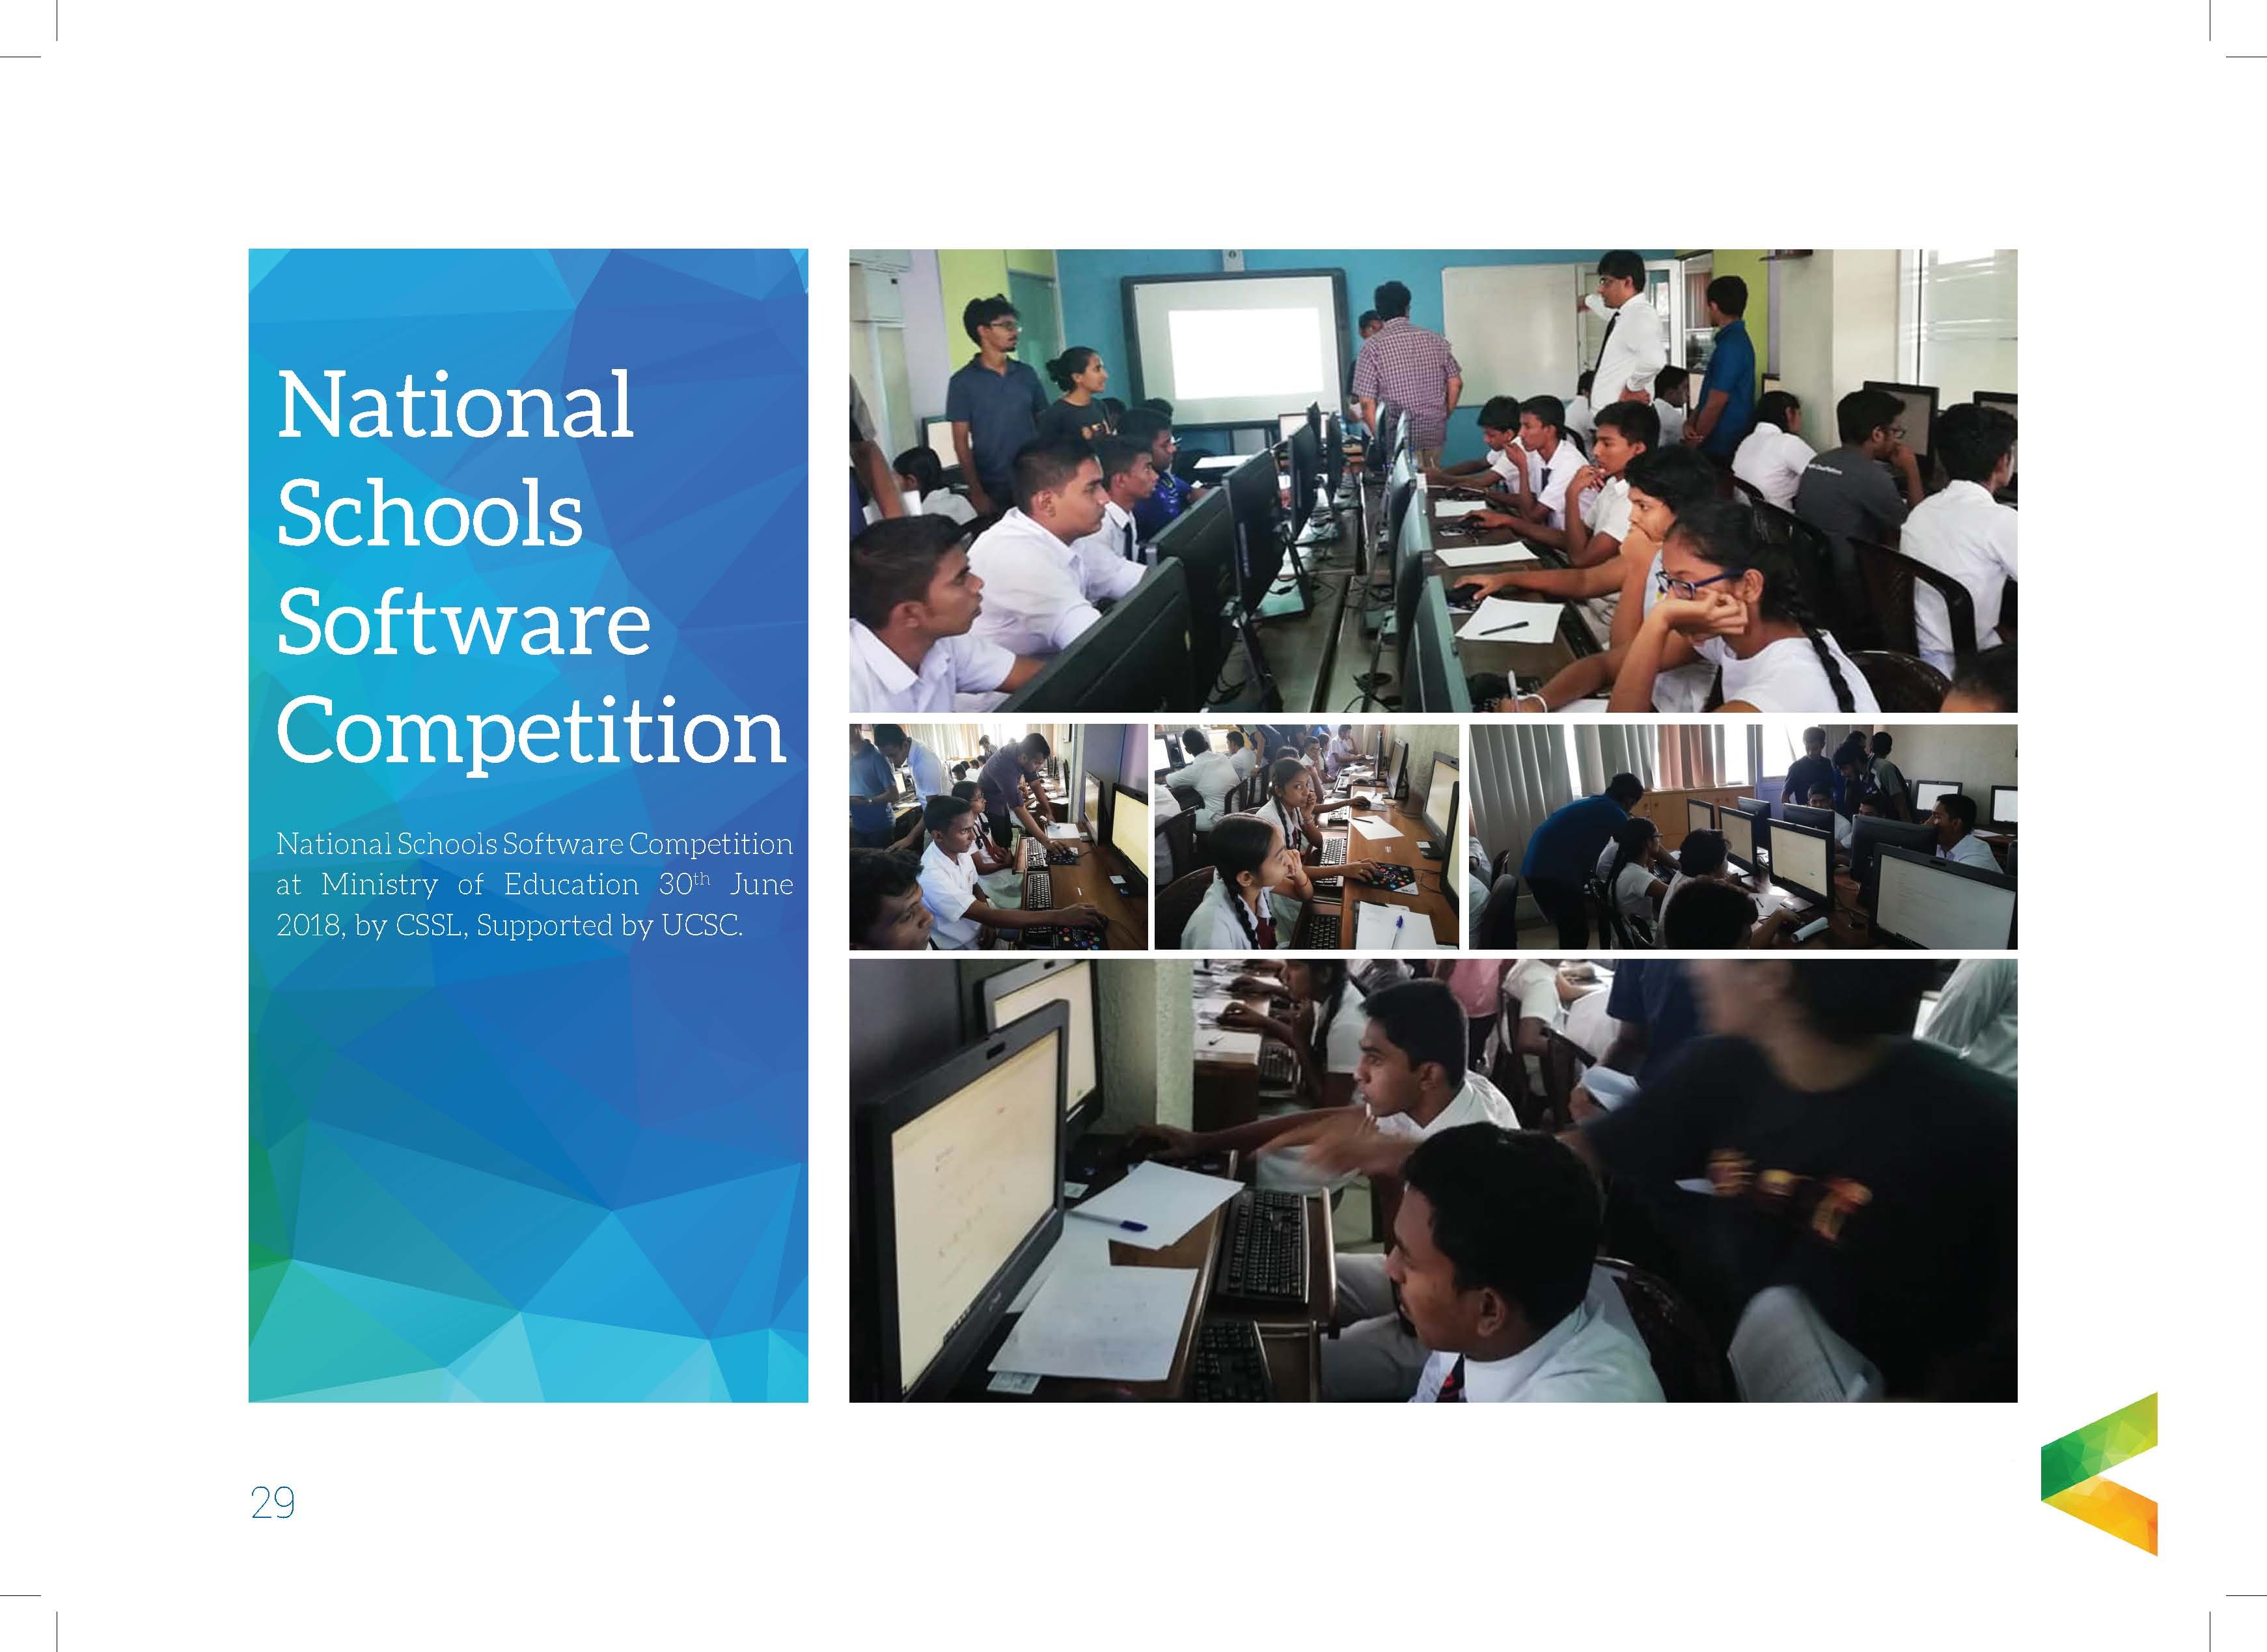 National Schools Software Competition (NSSC) – The Computer Society